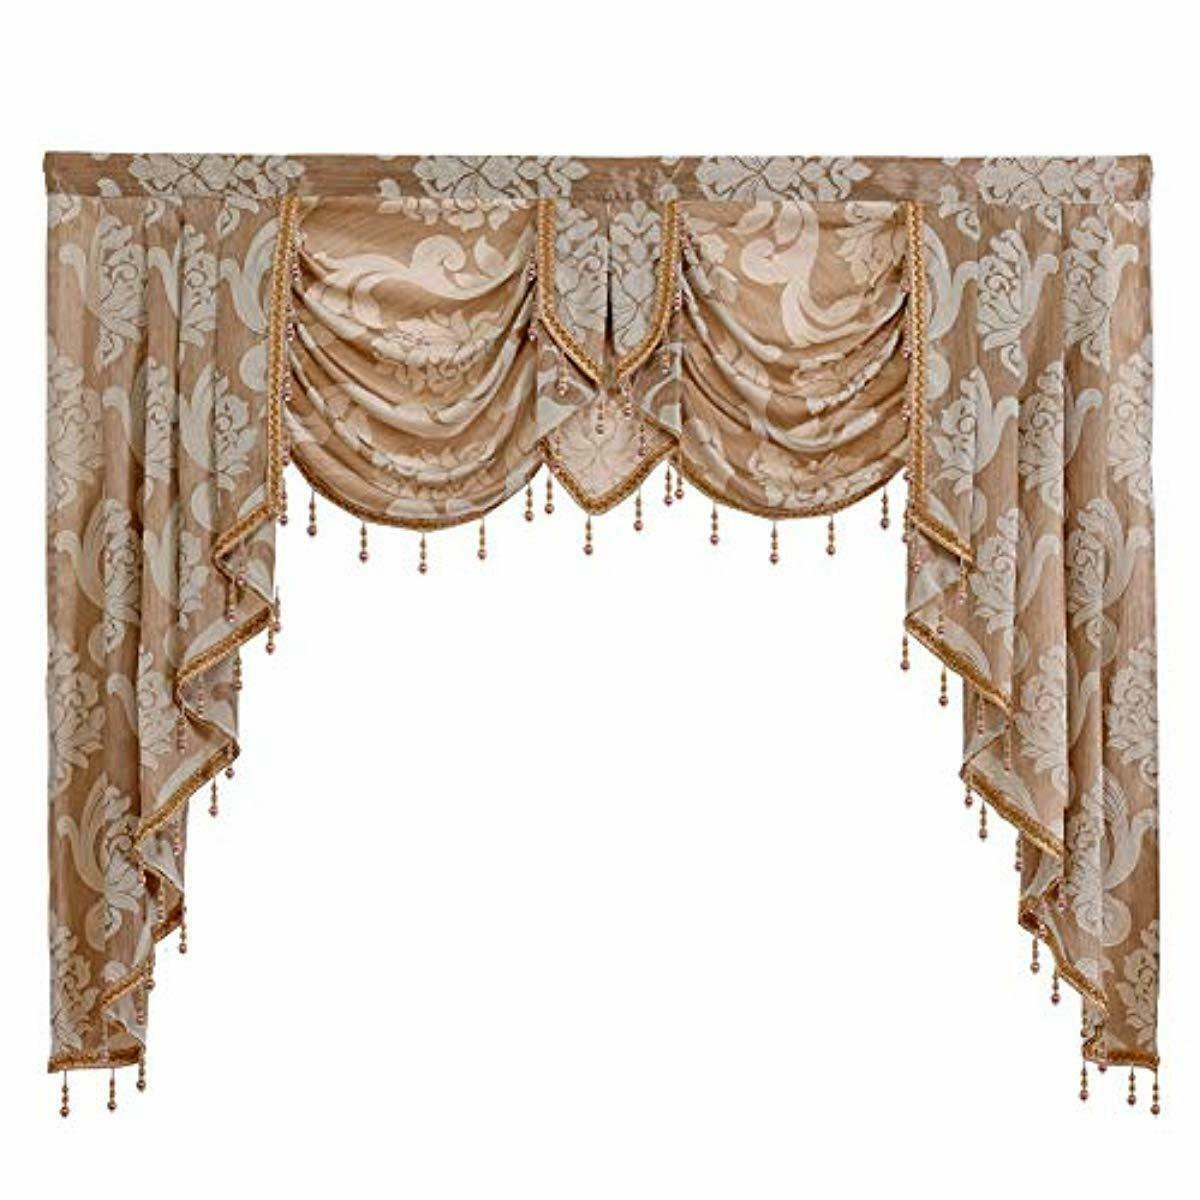 Napearl European Style Luxury Waterfall Valance Living Room Window Decoration 1 For Sale Online Ebay